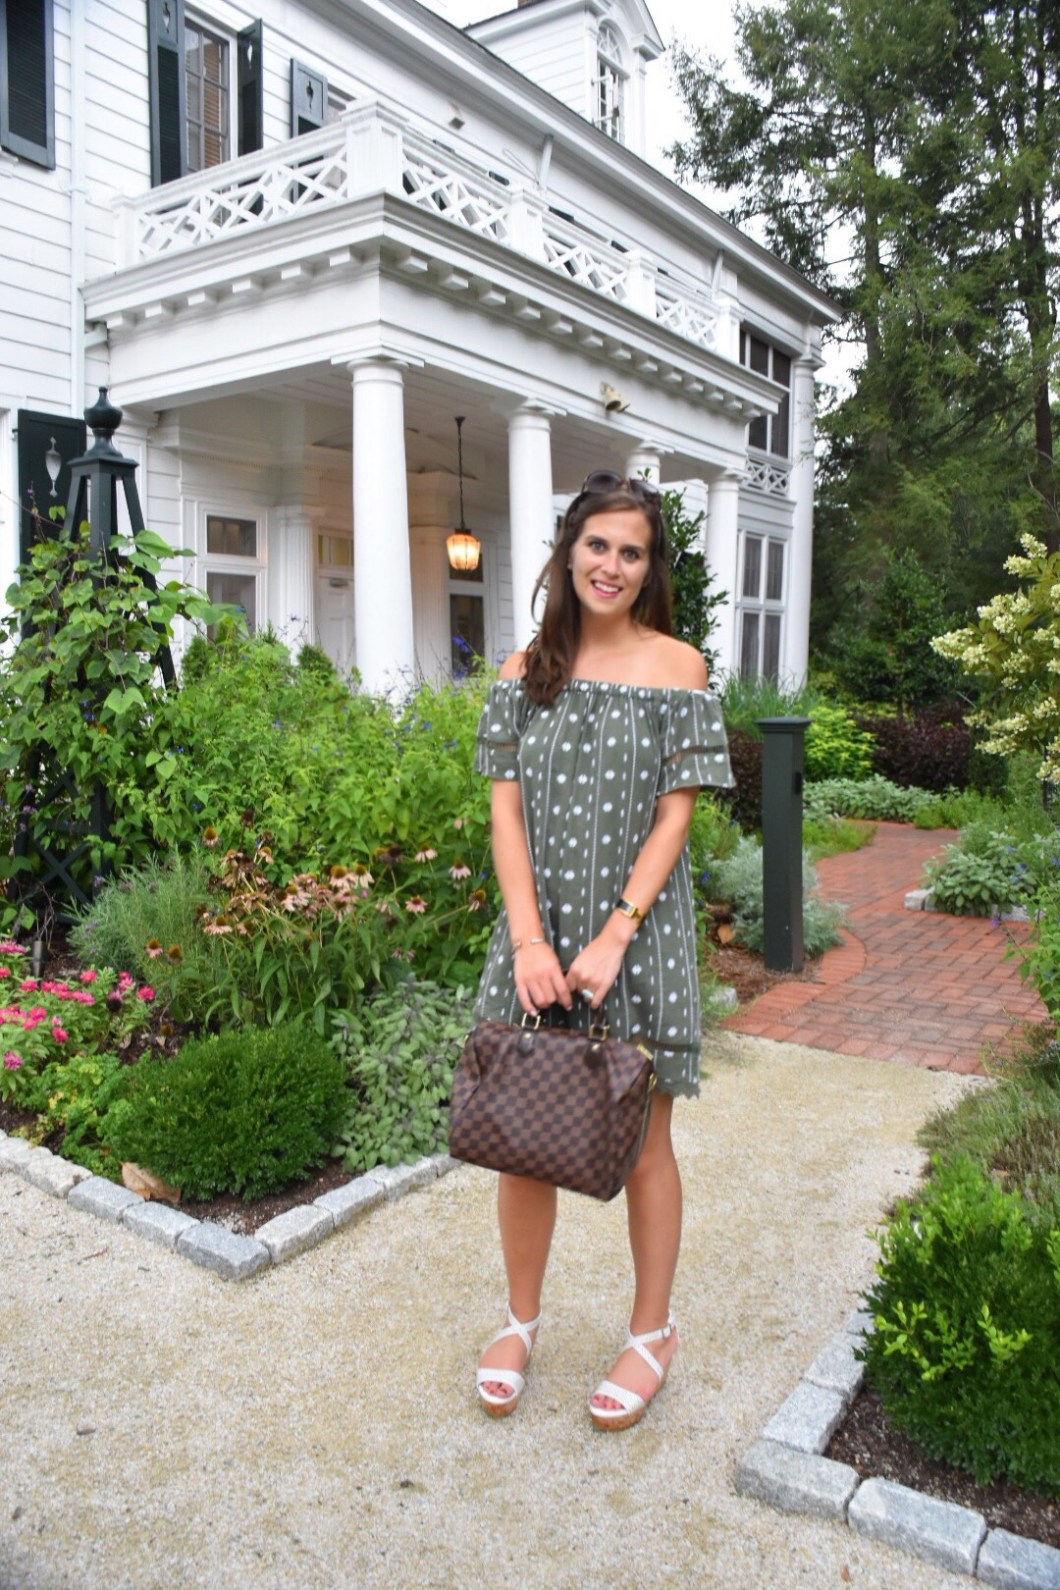 Southern Fashion Blogger, Srathardforlife